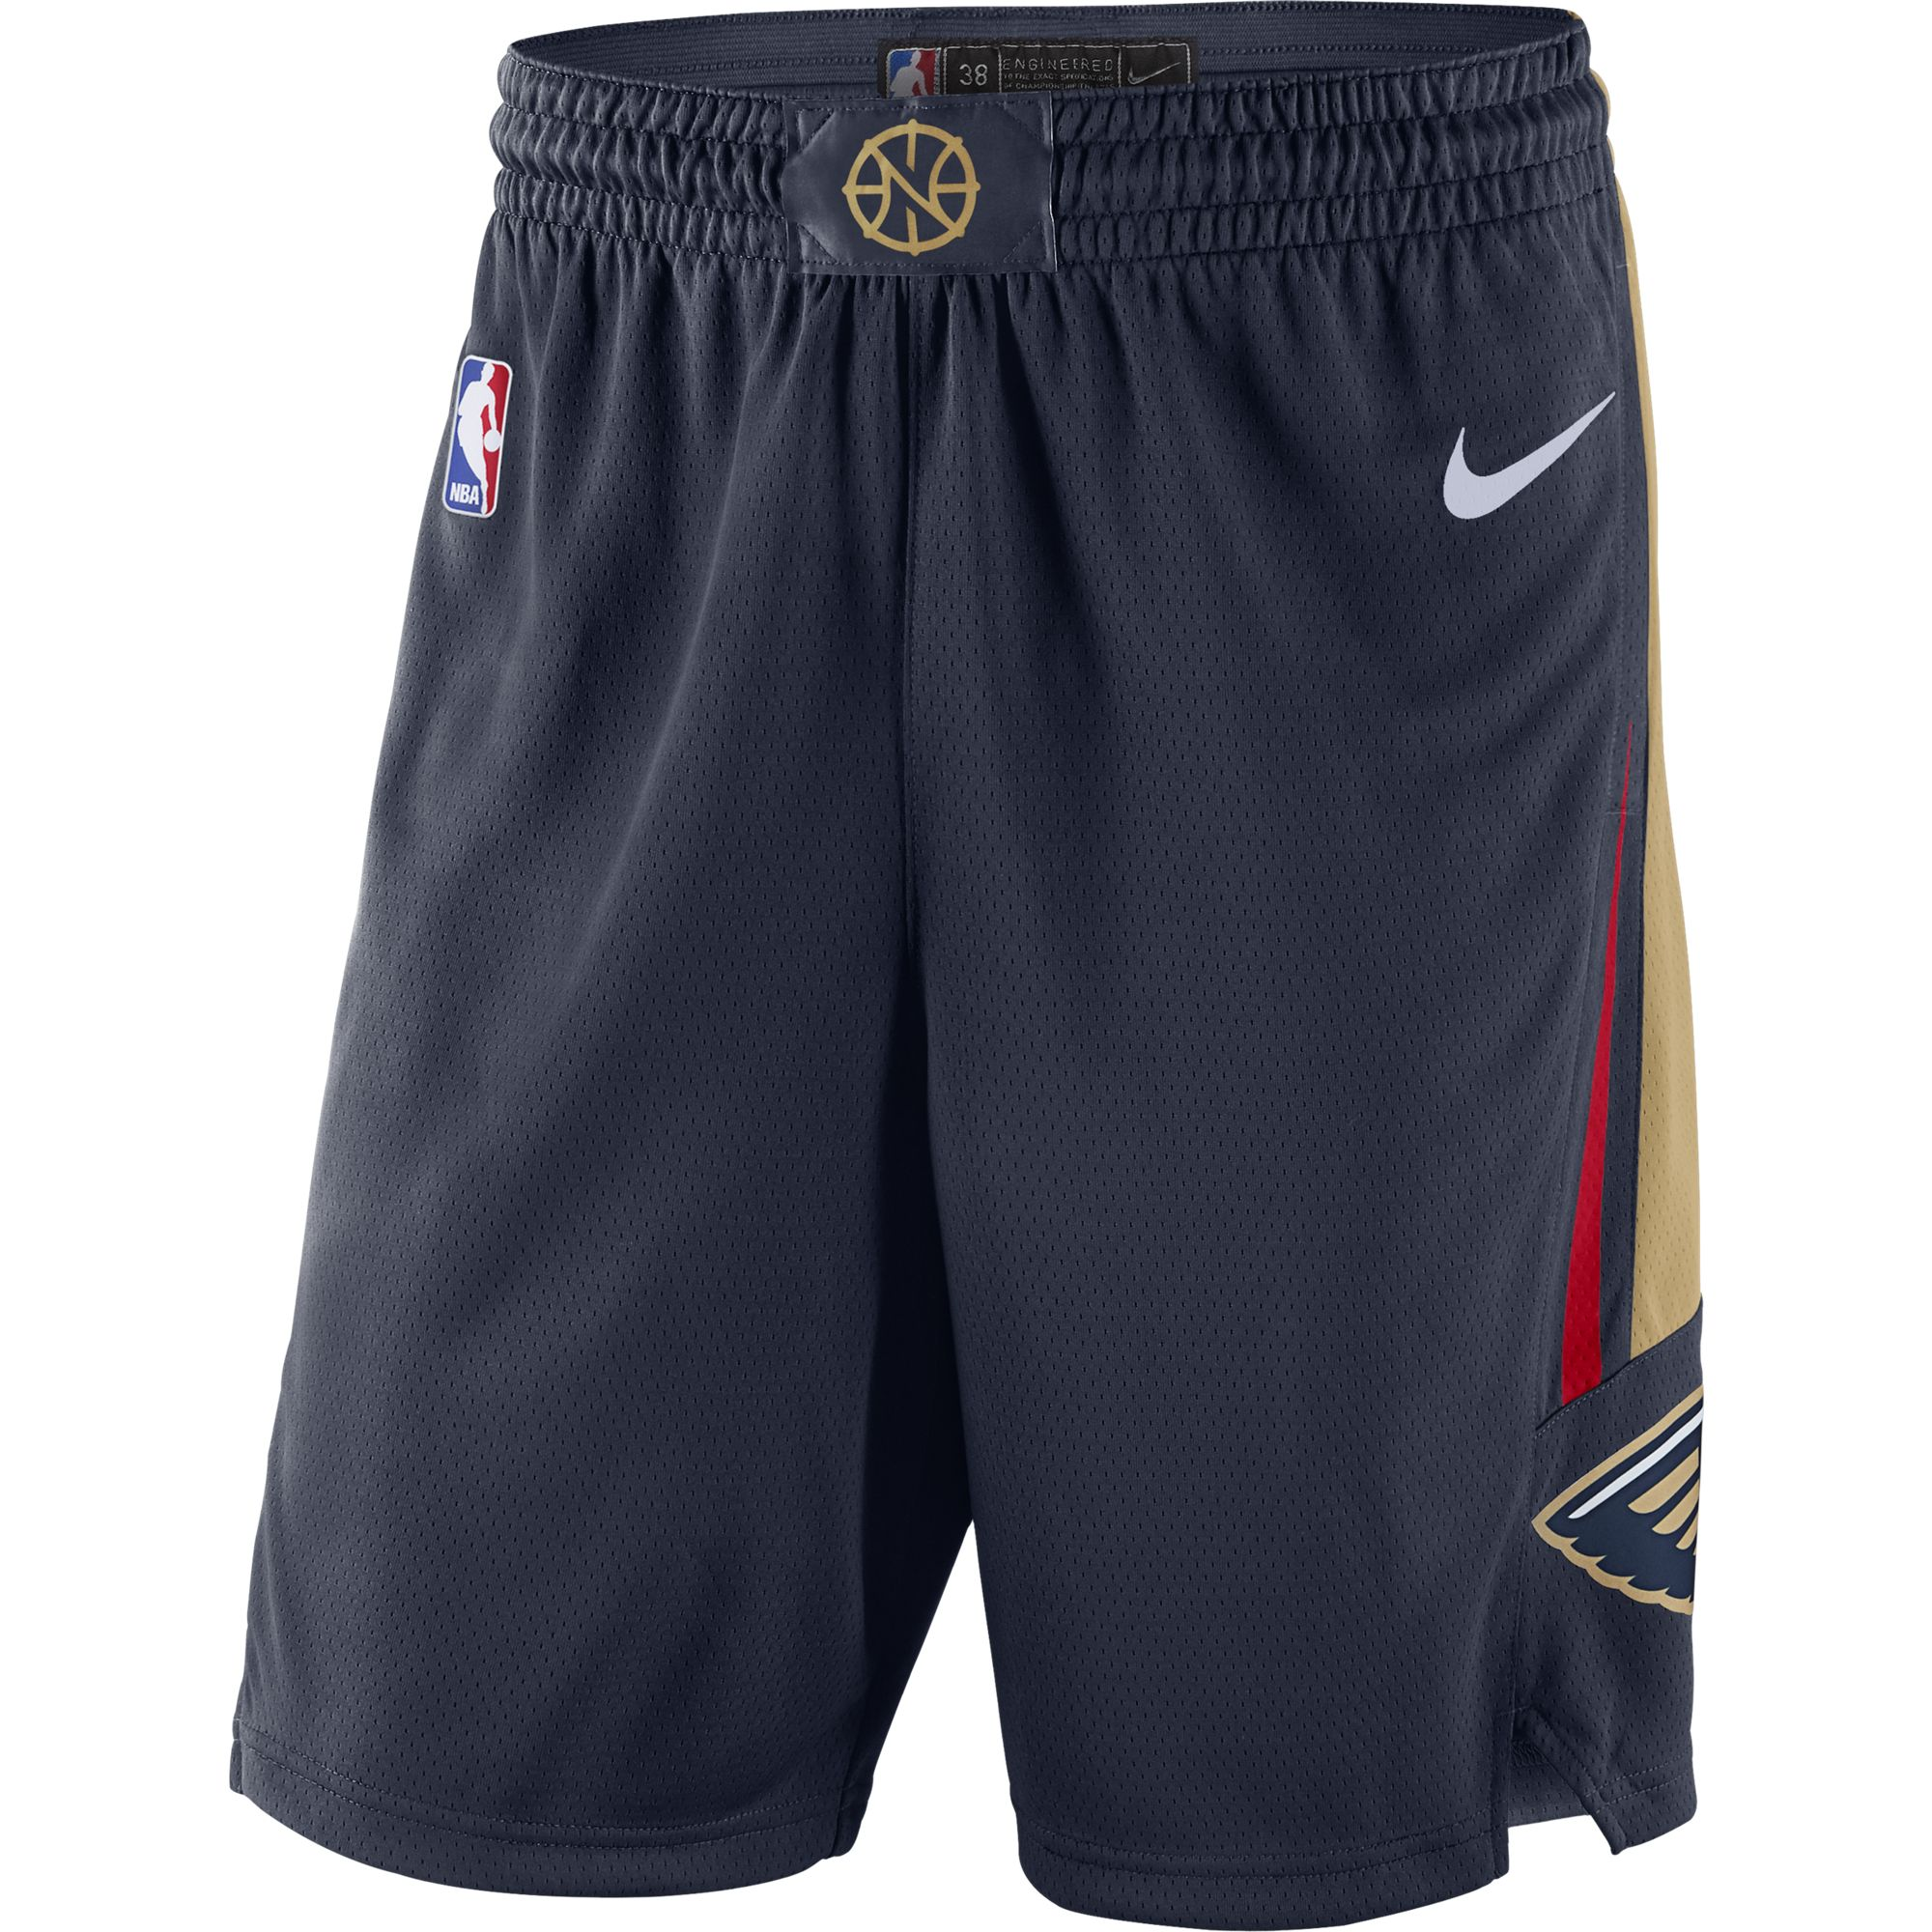 New Orleans Pelicans Nike 2019/20 Icon Edition Swingman Shorts - Navy